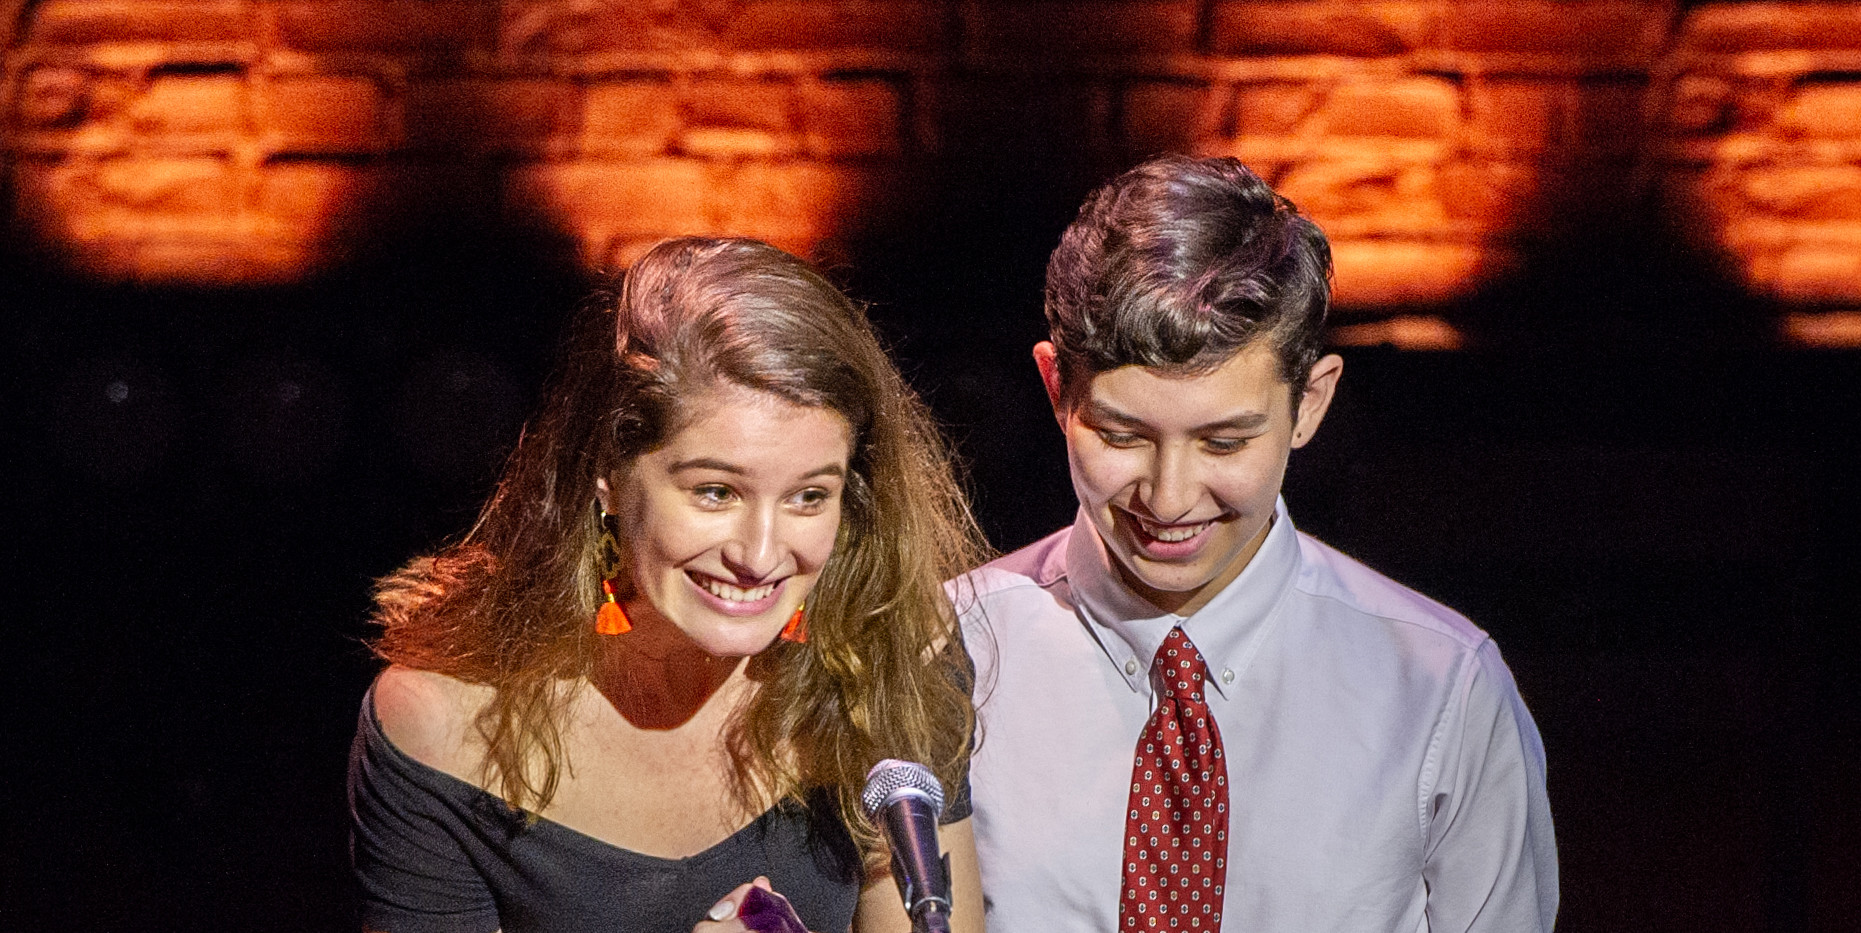 ENAs 2019 - AWARDEE - METG Emma Weller & Max Hunter - Photo by Bob Bond - COPYRIGHTED